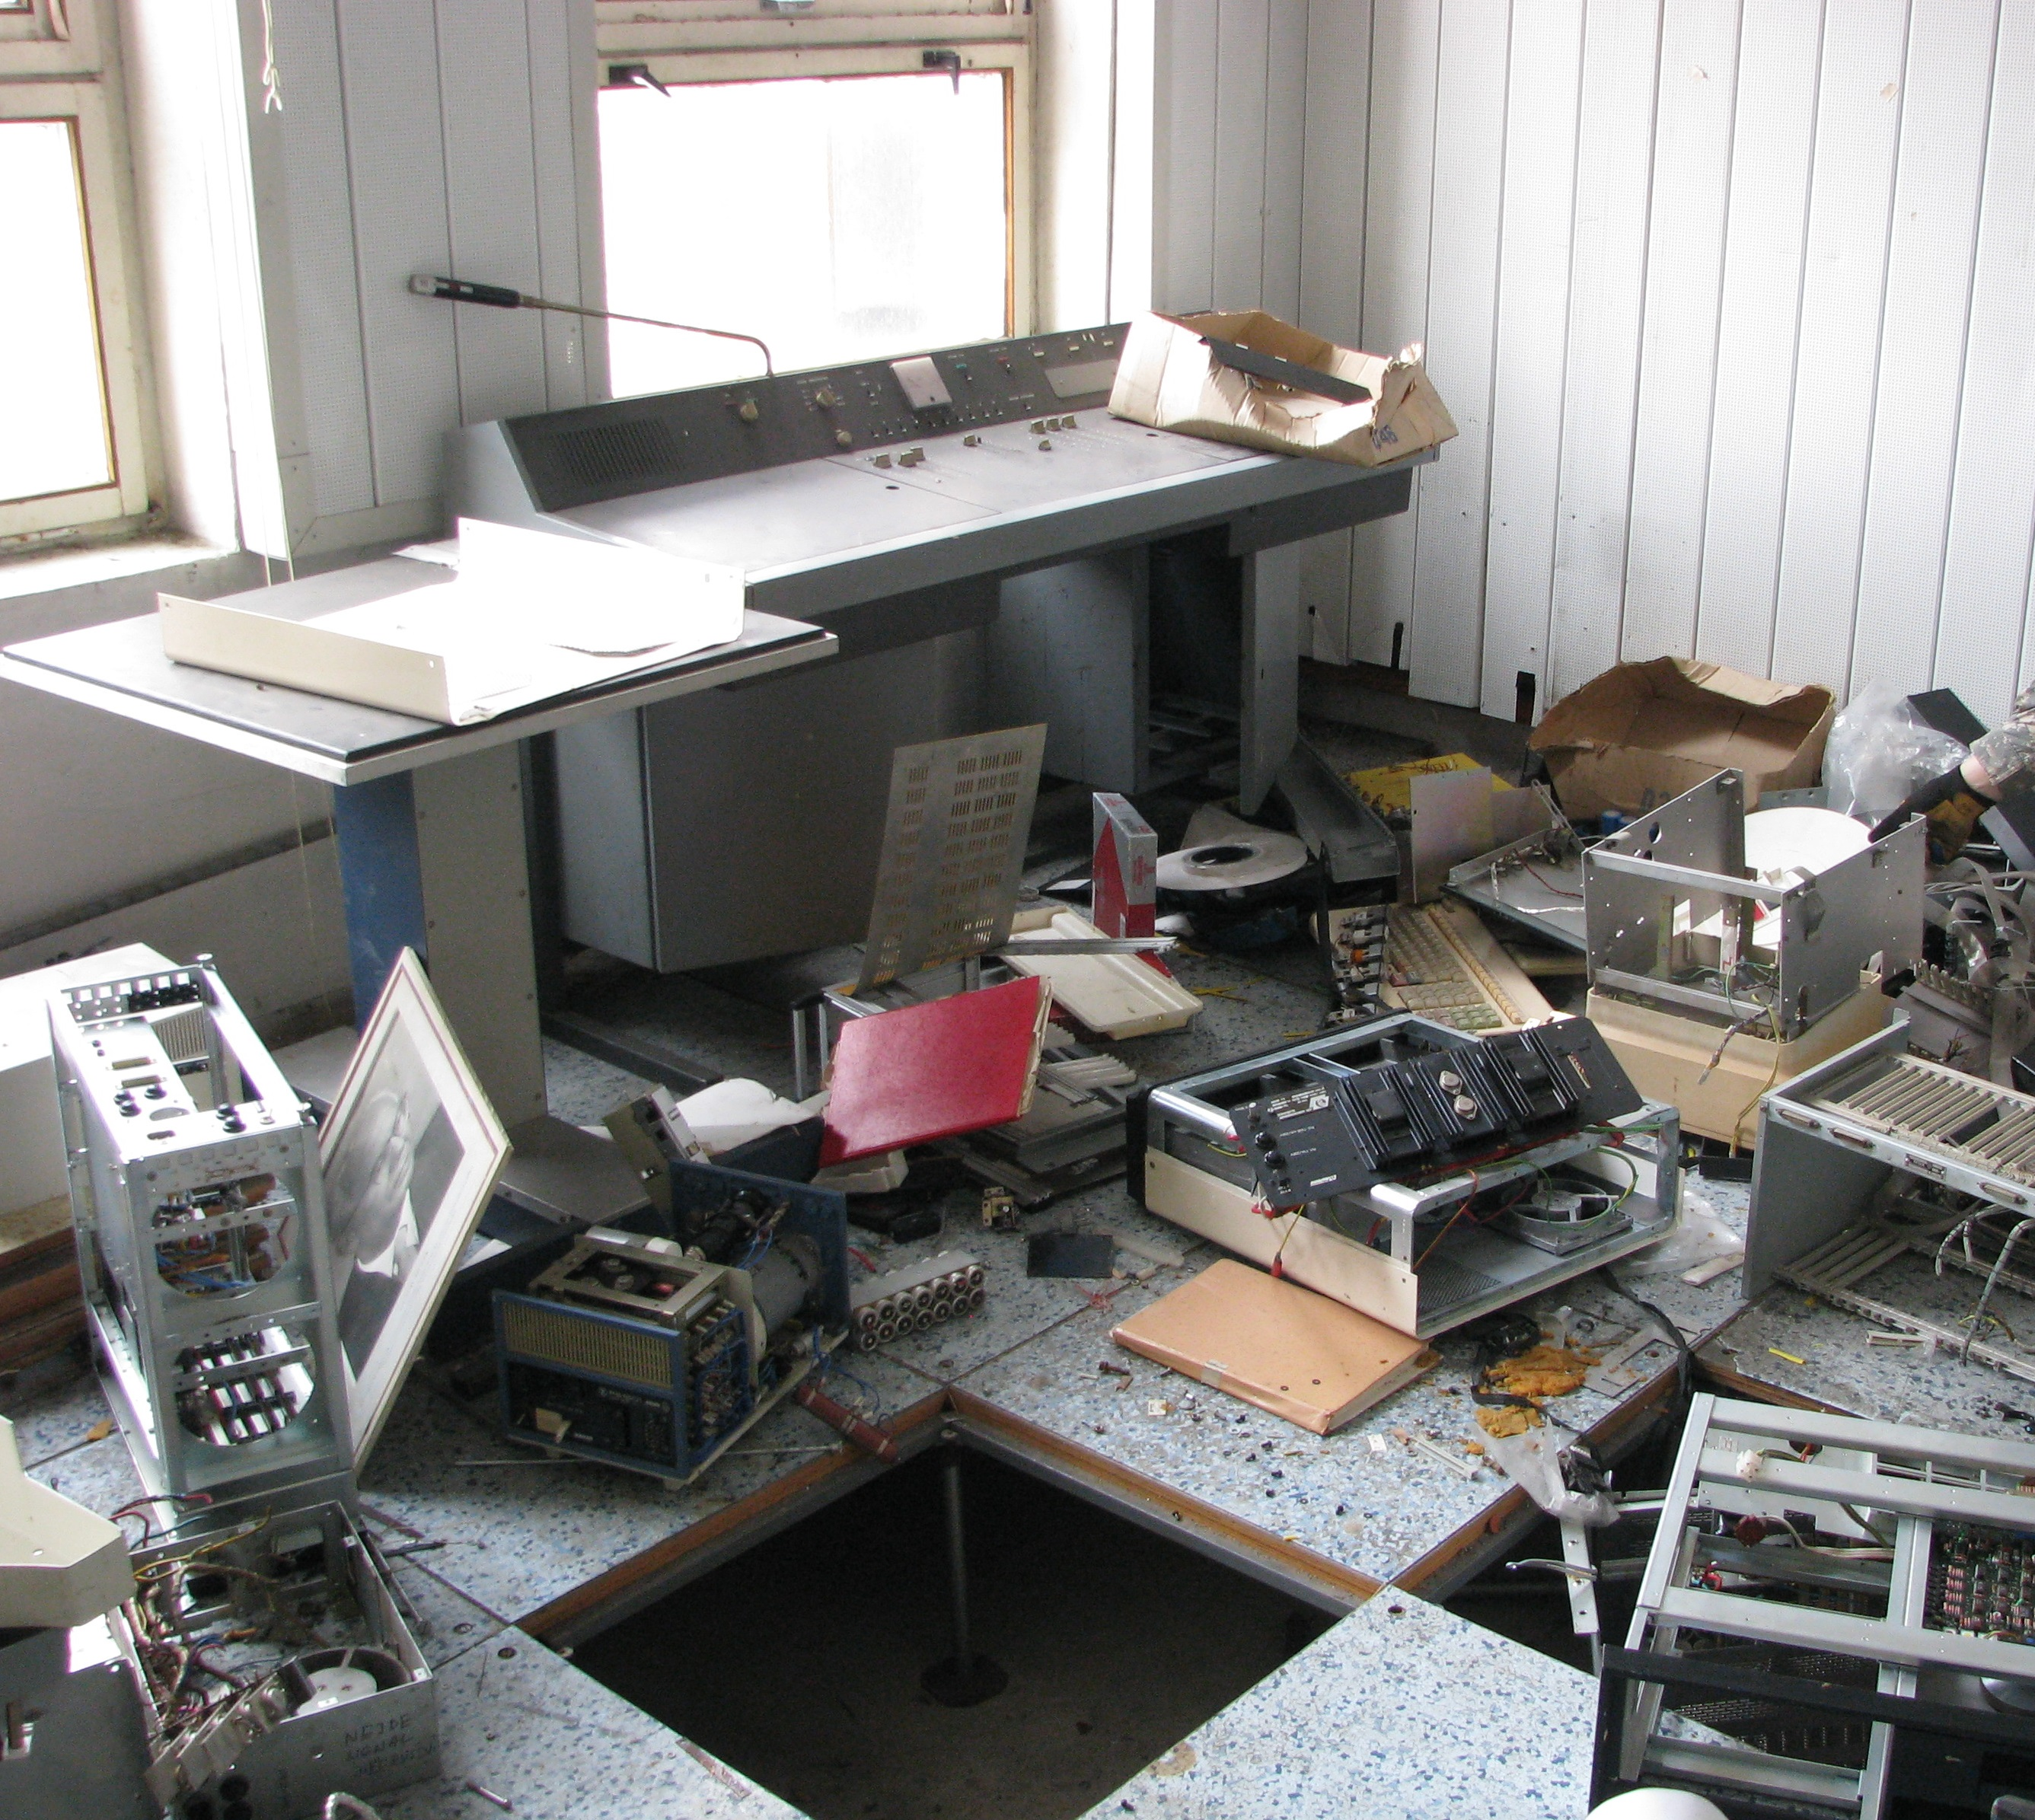 notice some terminal keyboard on the floor, this used to be a server room